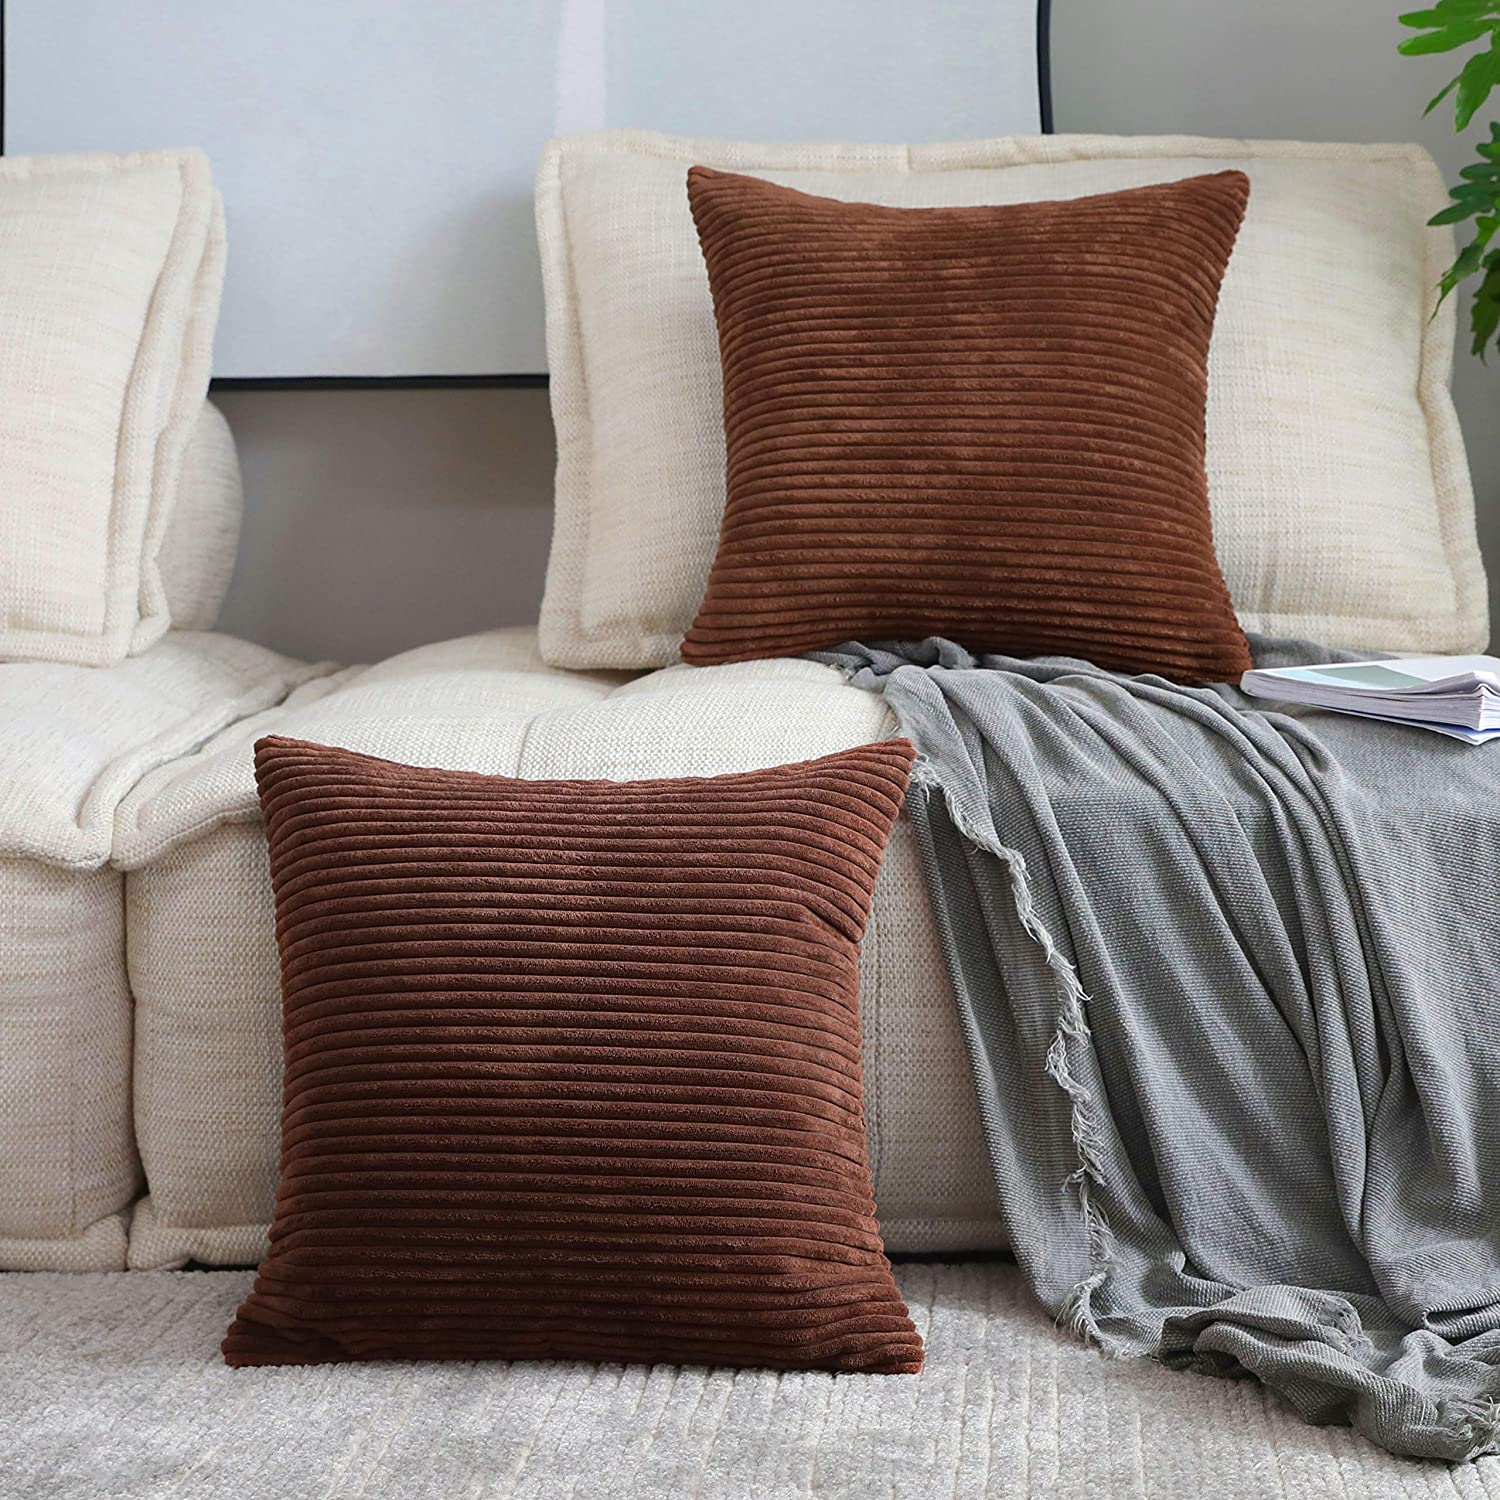 Home Brilliant Brown Couch Pillows Set of 2 Soft Striped Velvet Decorative Throw Pillows Covers 22x22 inch, Cushion Covers for Couch 55x55cm